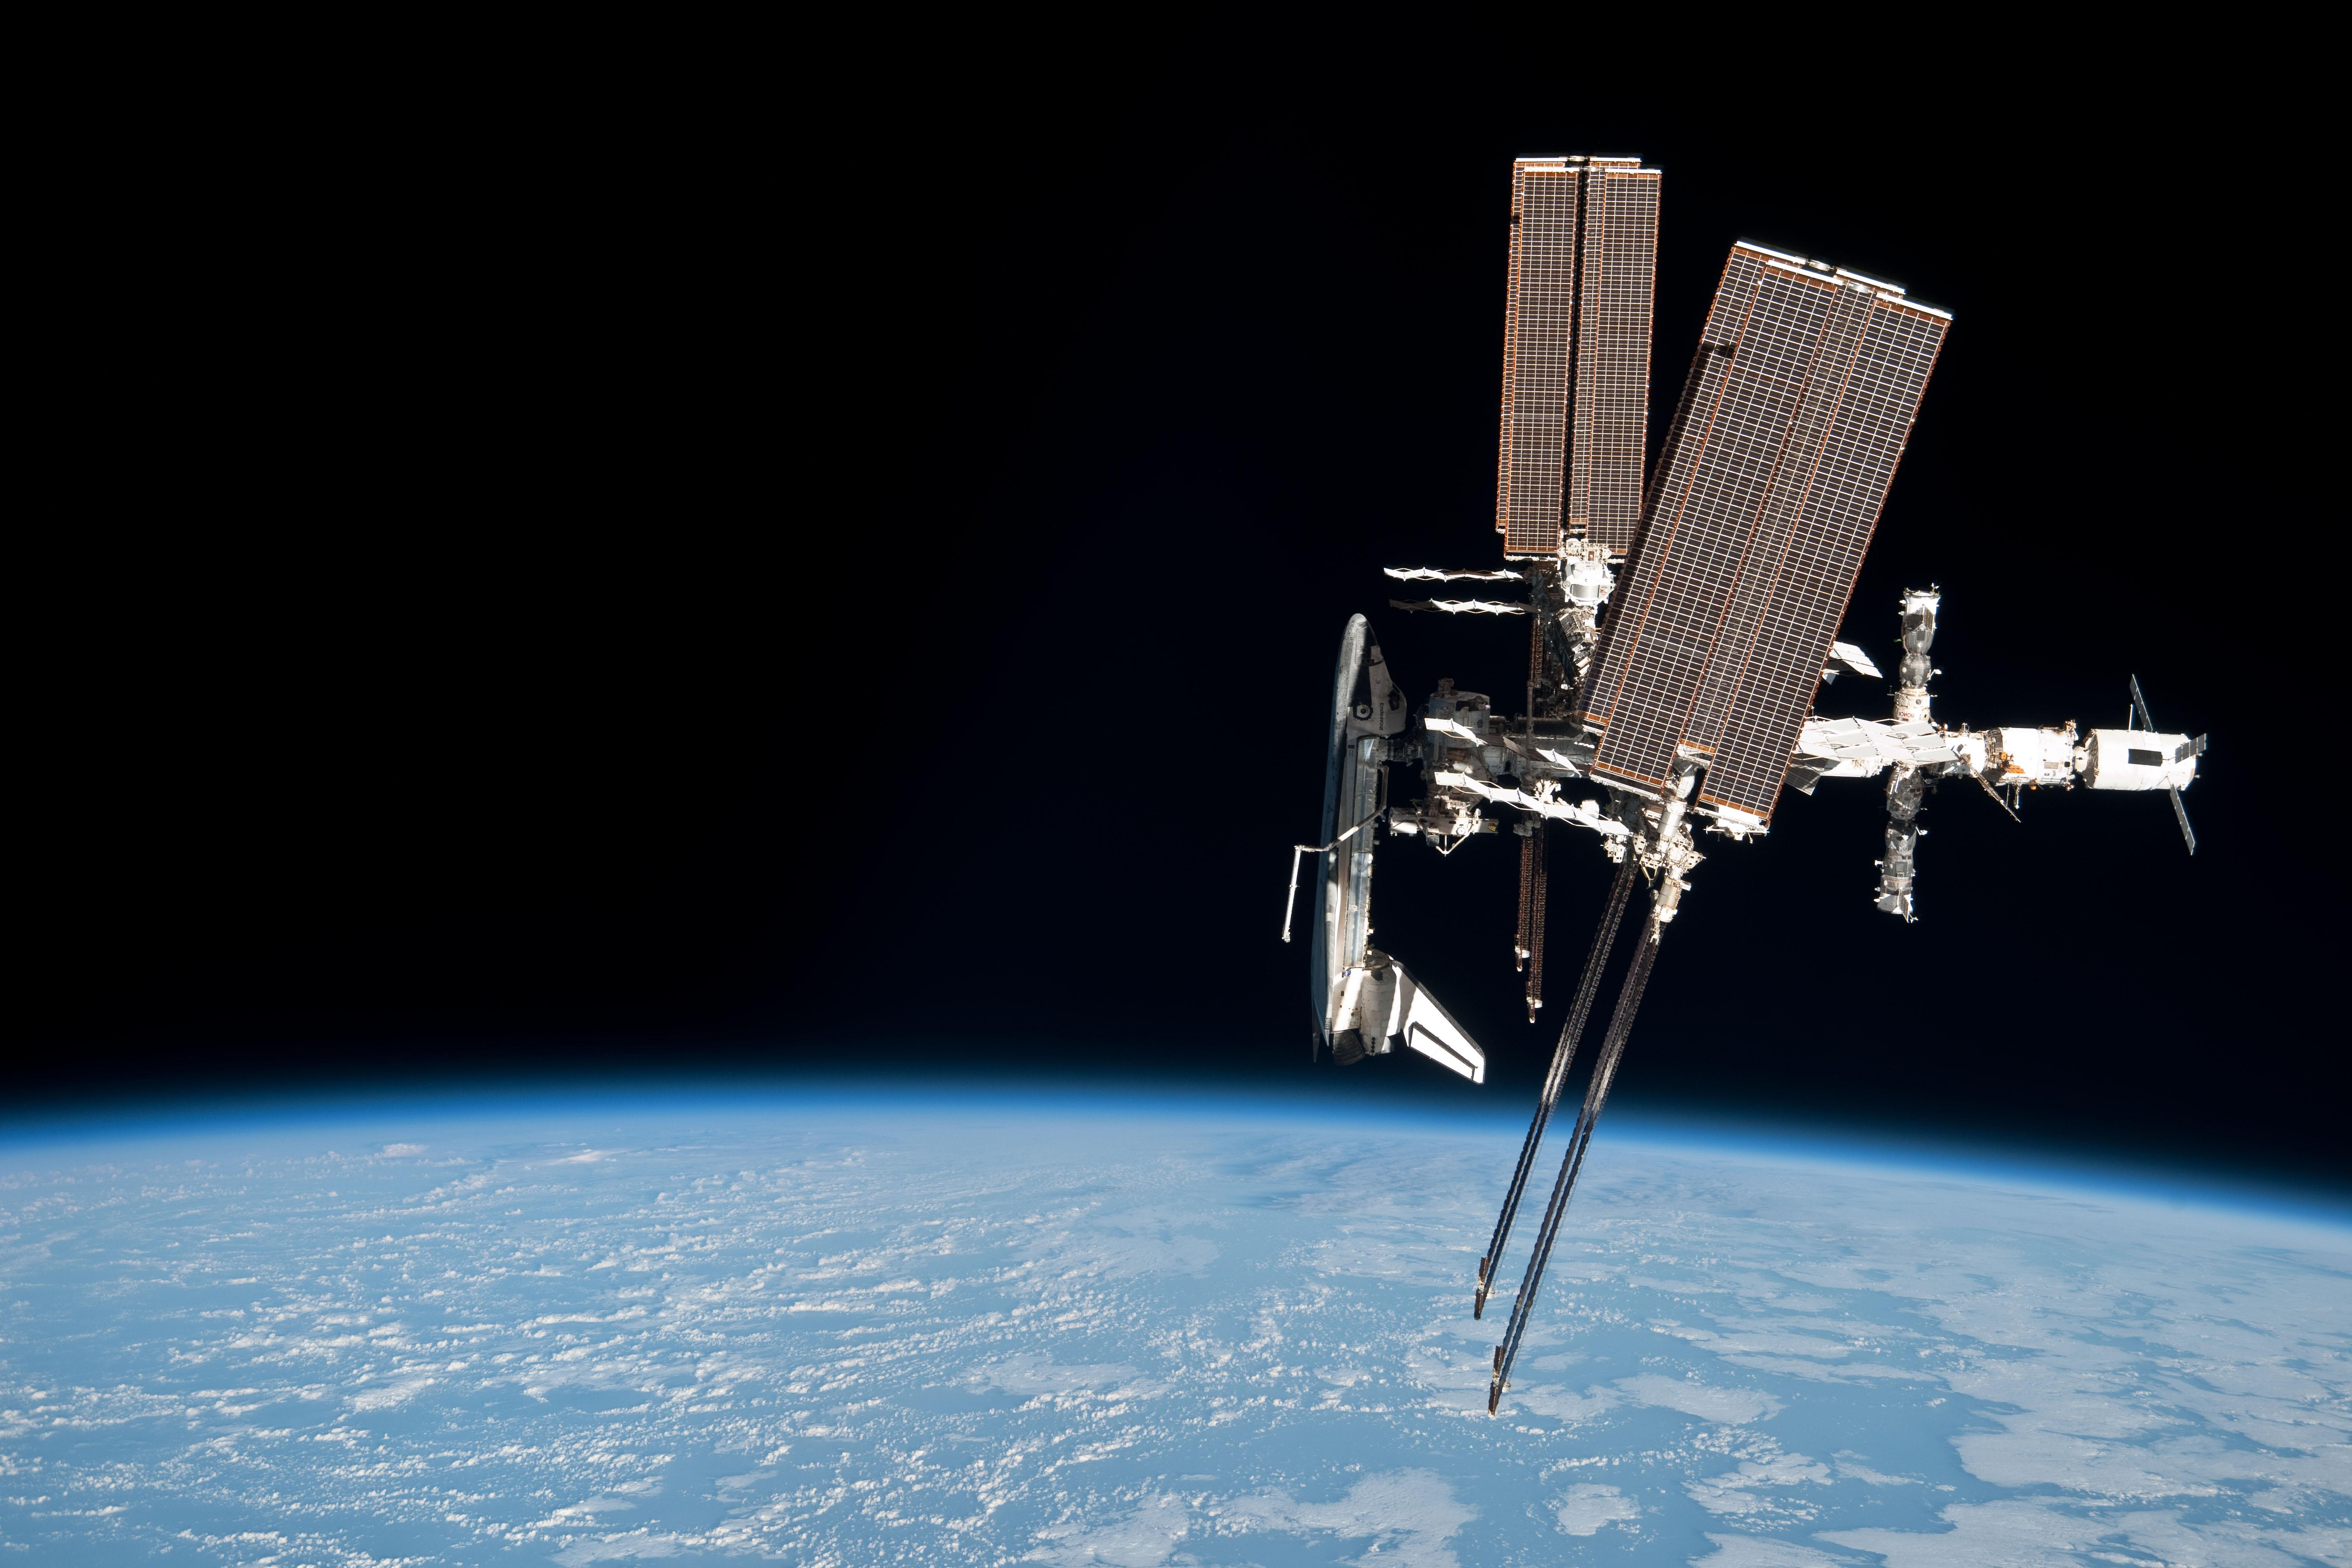 photograph from nasa international space station - photo #28